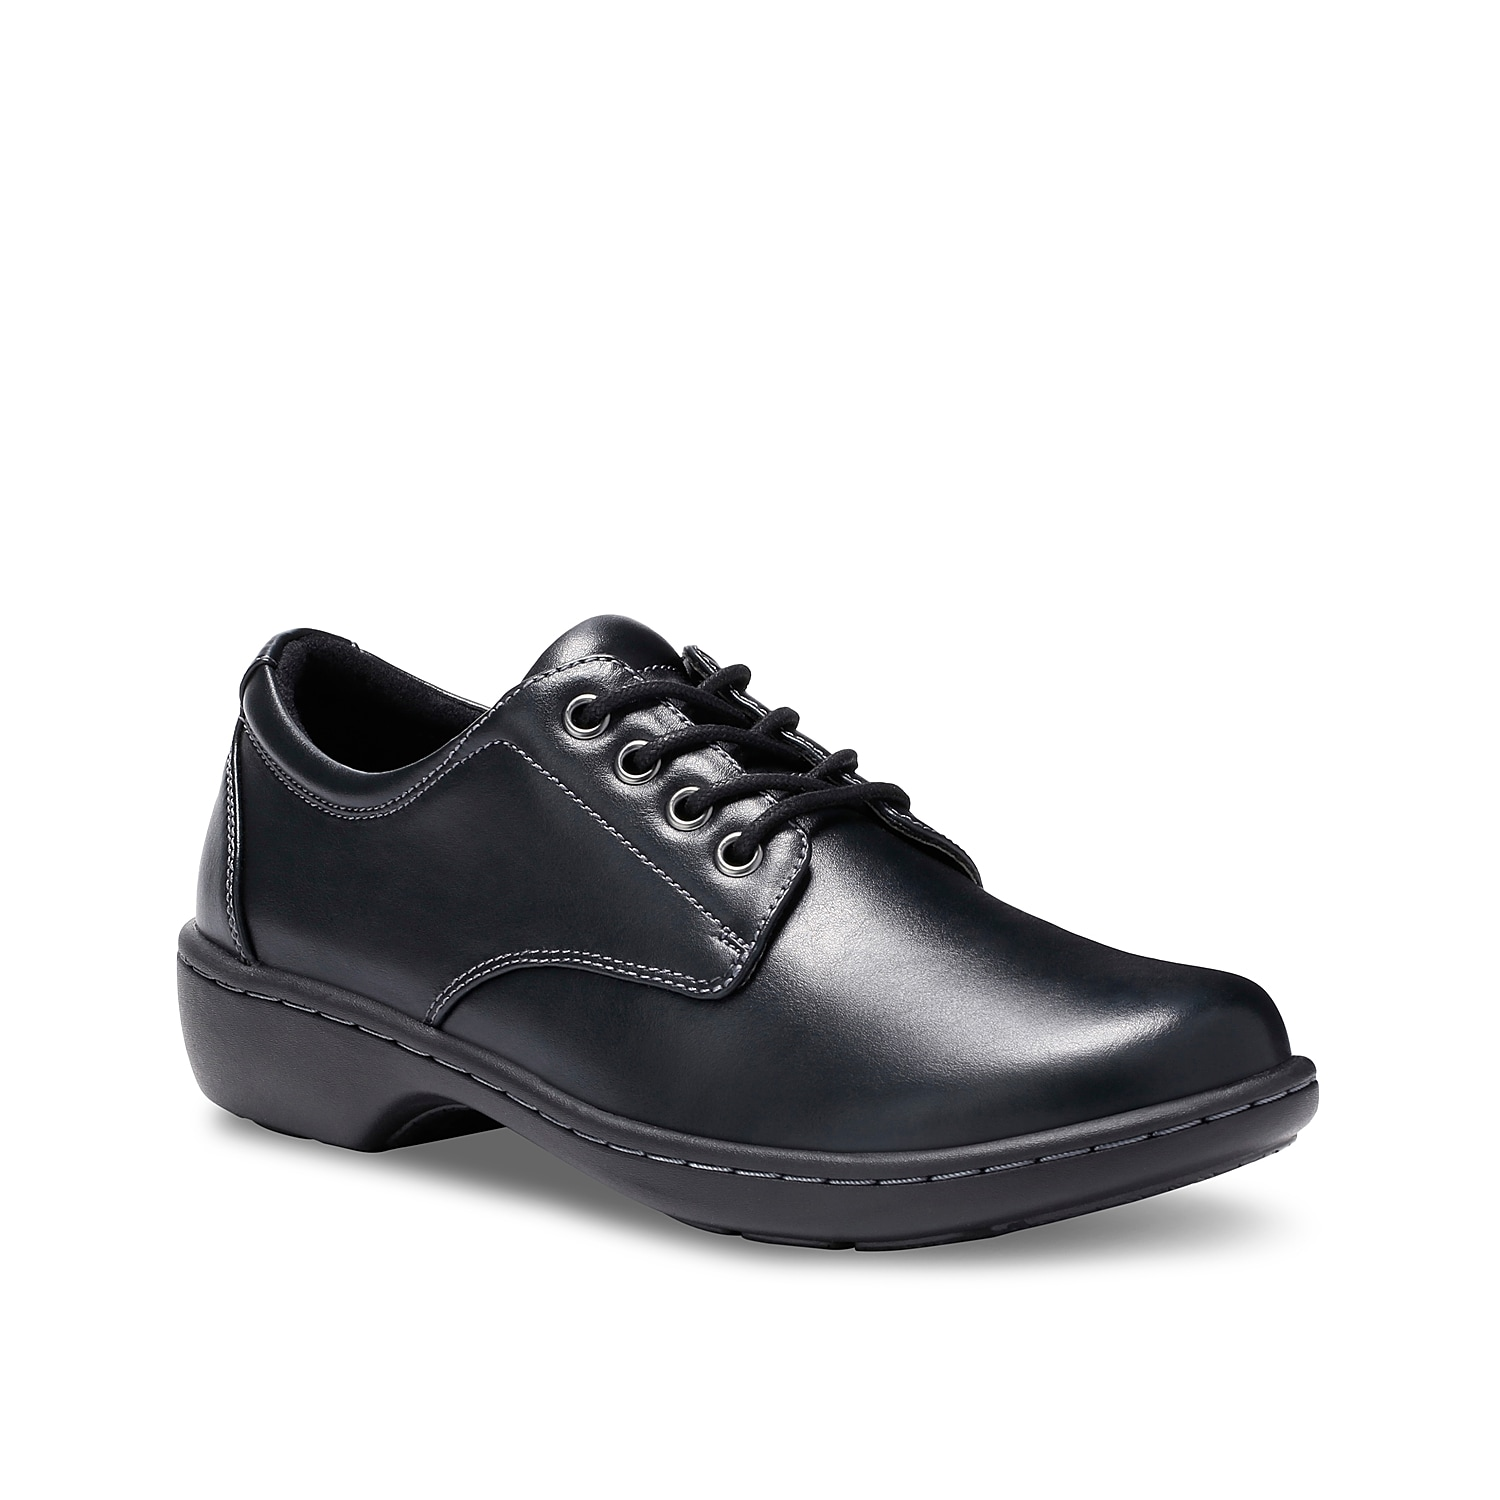 Lace up the ultra-comfortable Pandora oxford from Eastland. The cushioned insole and contrast stitch detailing will add the perfect finishing touch to your ensemble.